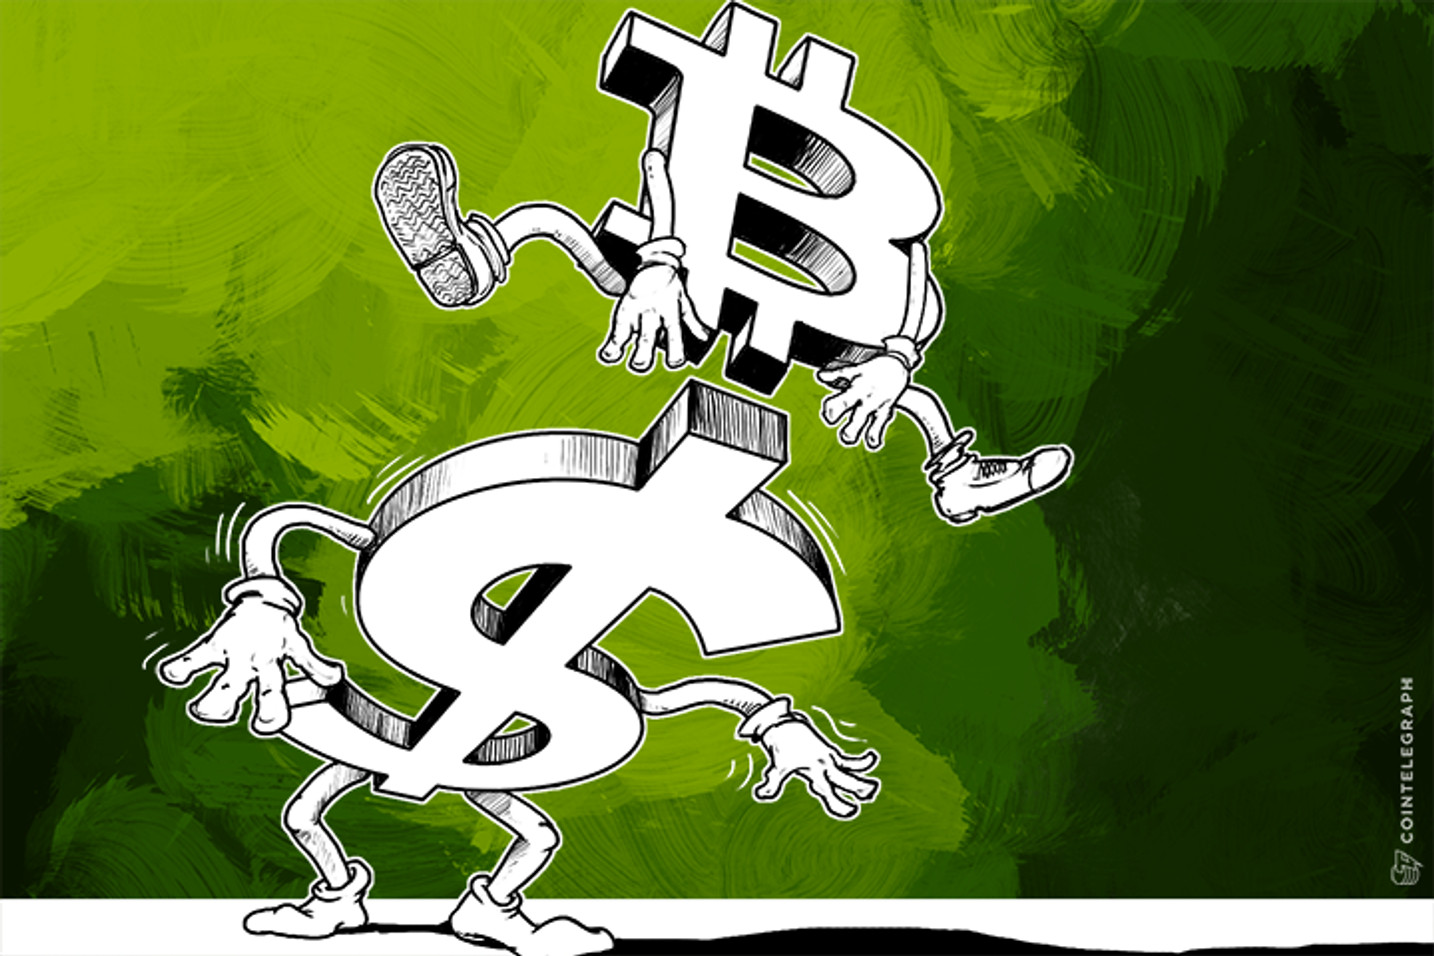 Dollar Weakening Could Propel Bitcoin to $300